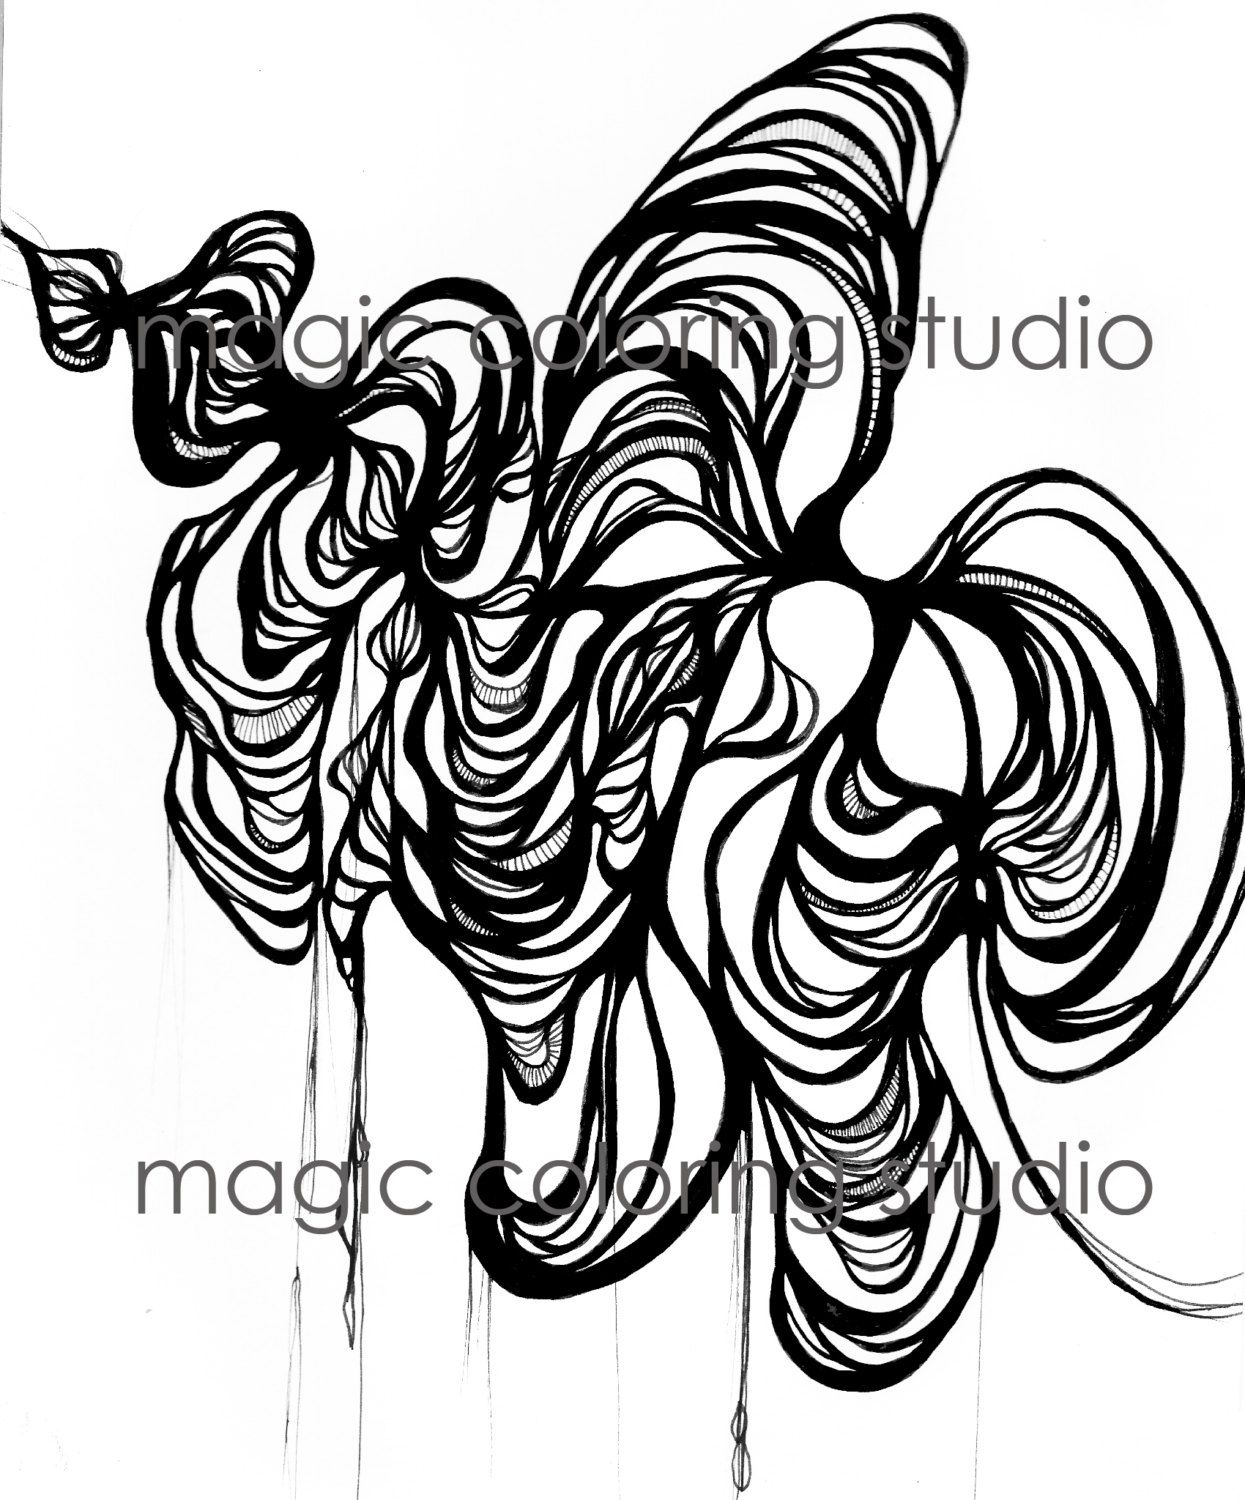 Abstract Sea Flower Coloring Page Adult And Children Printable Illustration Art Magically Combined